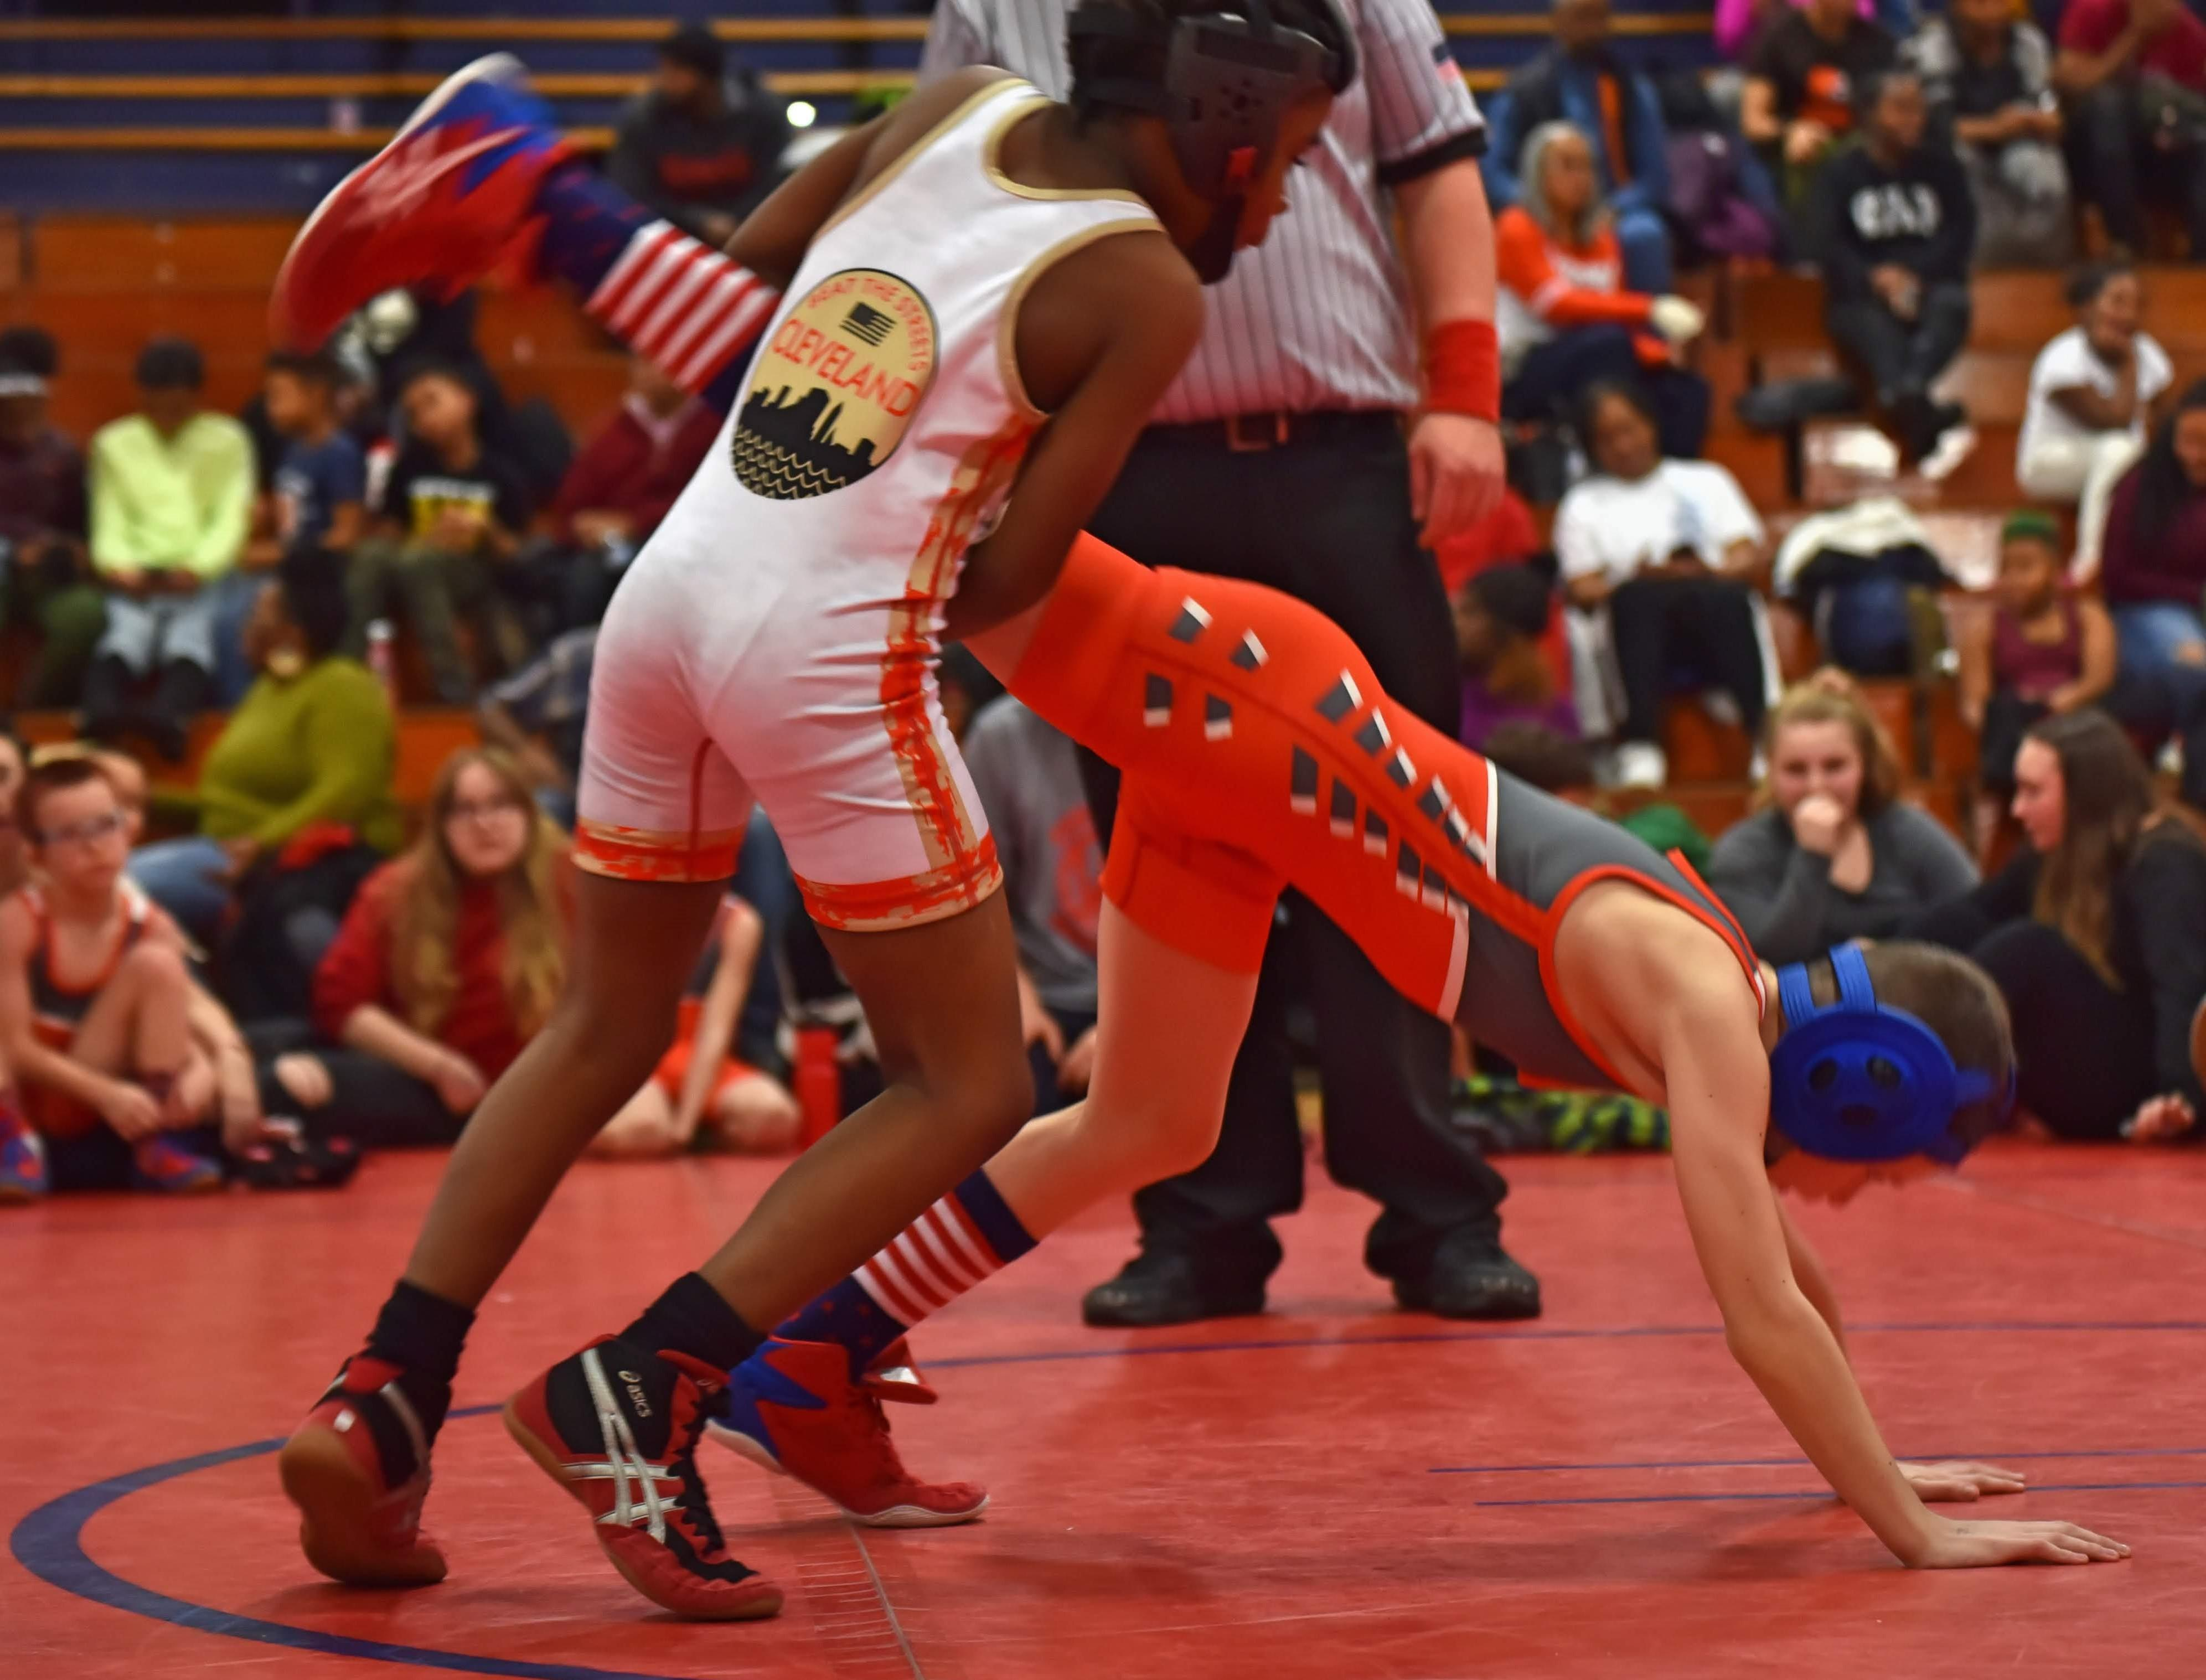 Beat the Streets Cleveland wrestler taking down the competition